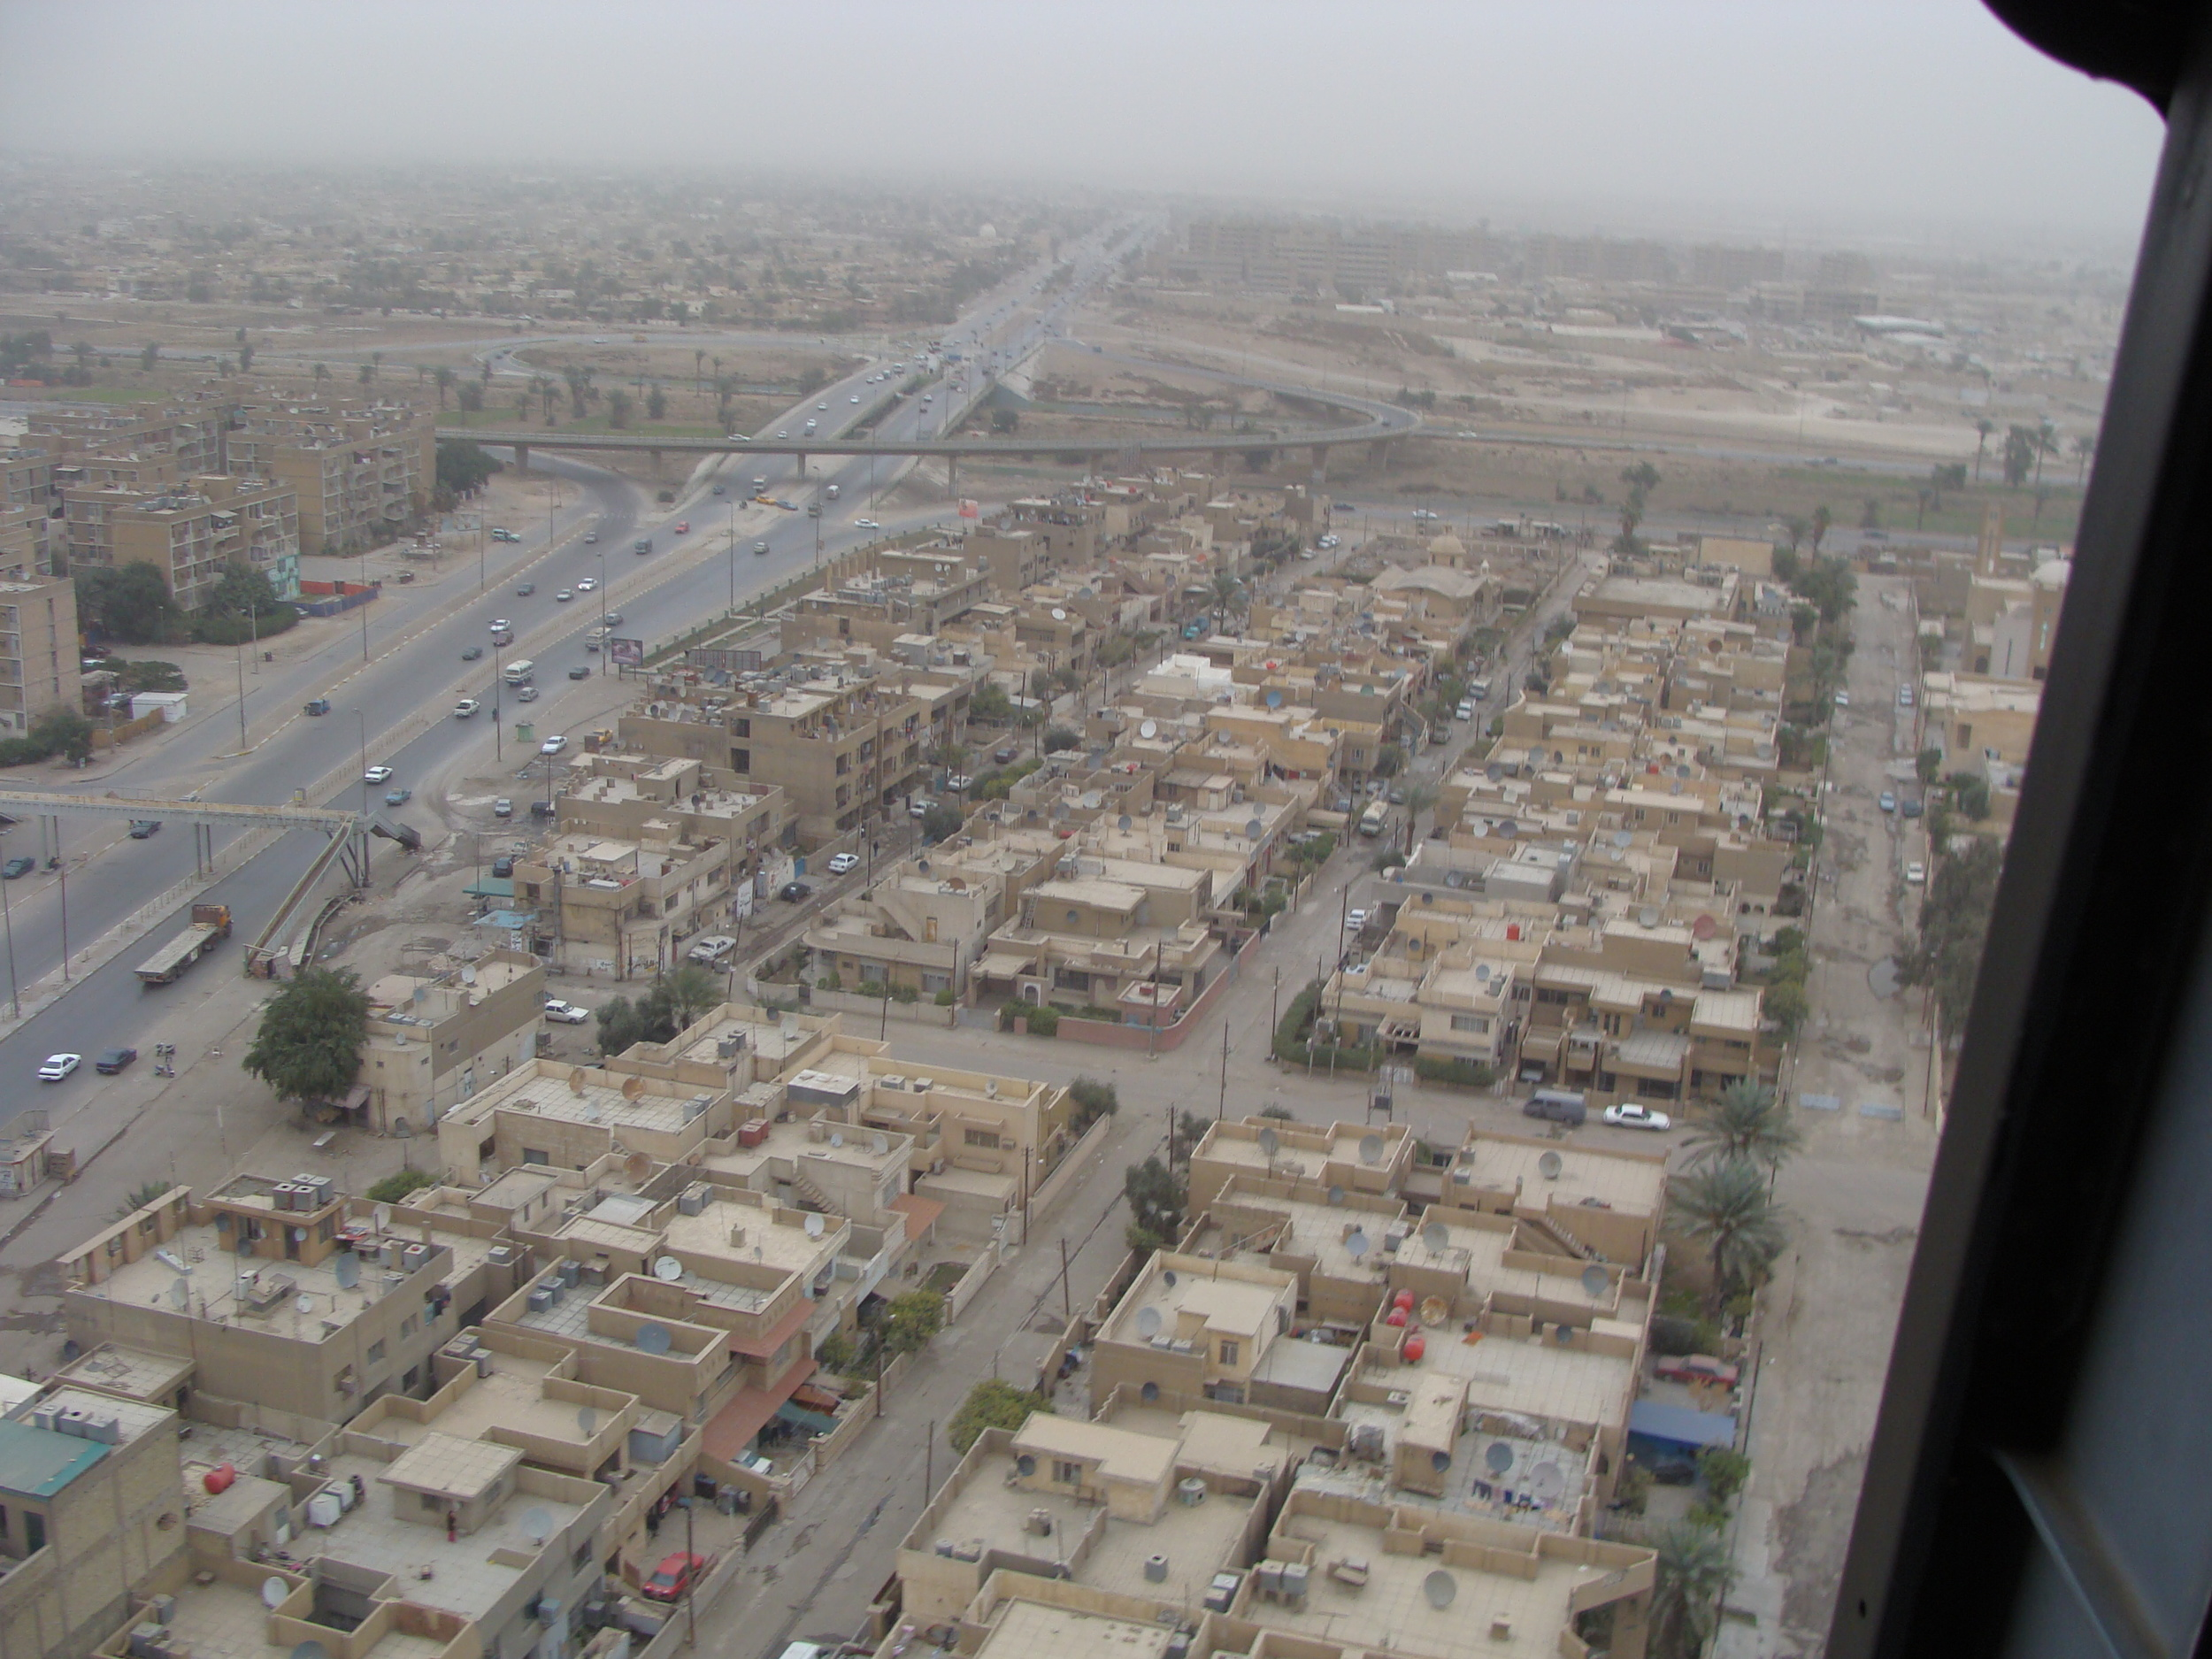 Eastern Baghdad from above